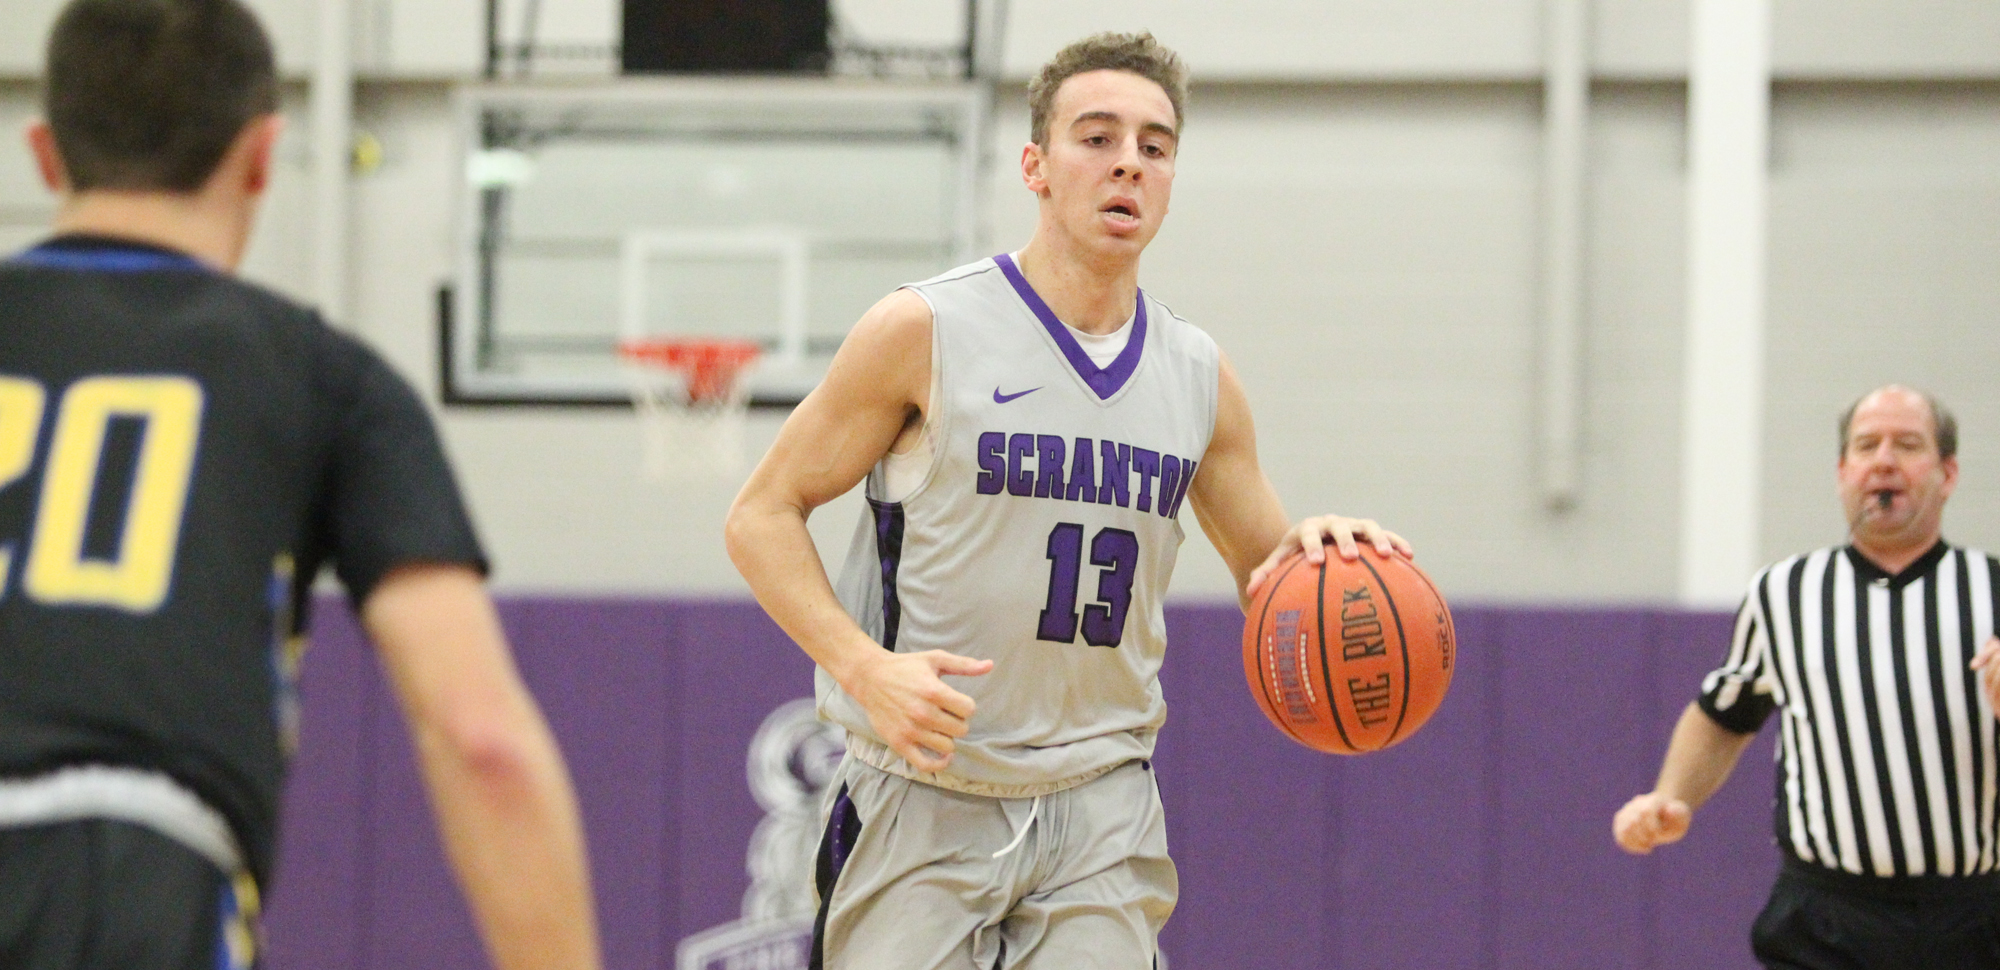 Sophomore Logan Bailey has been named The University of Scranton Athlete of the Week © Photo by Timothy R. Dougherty / doubleeaglephotography.com